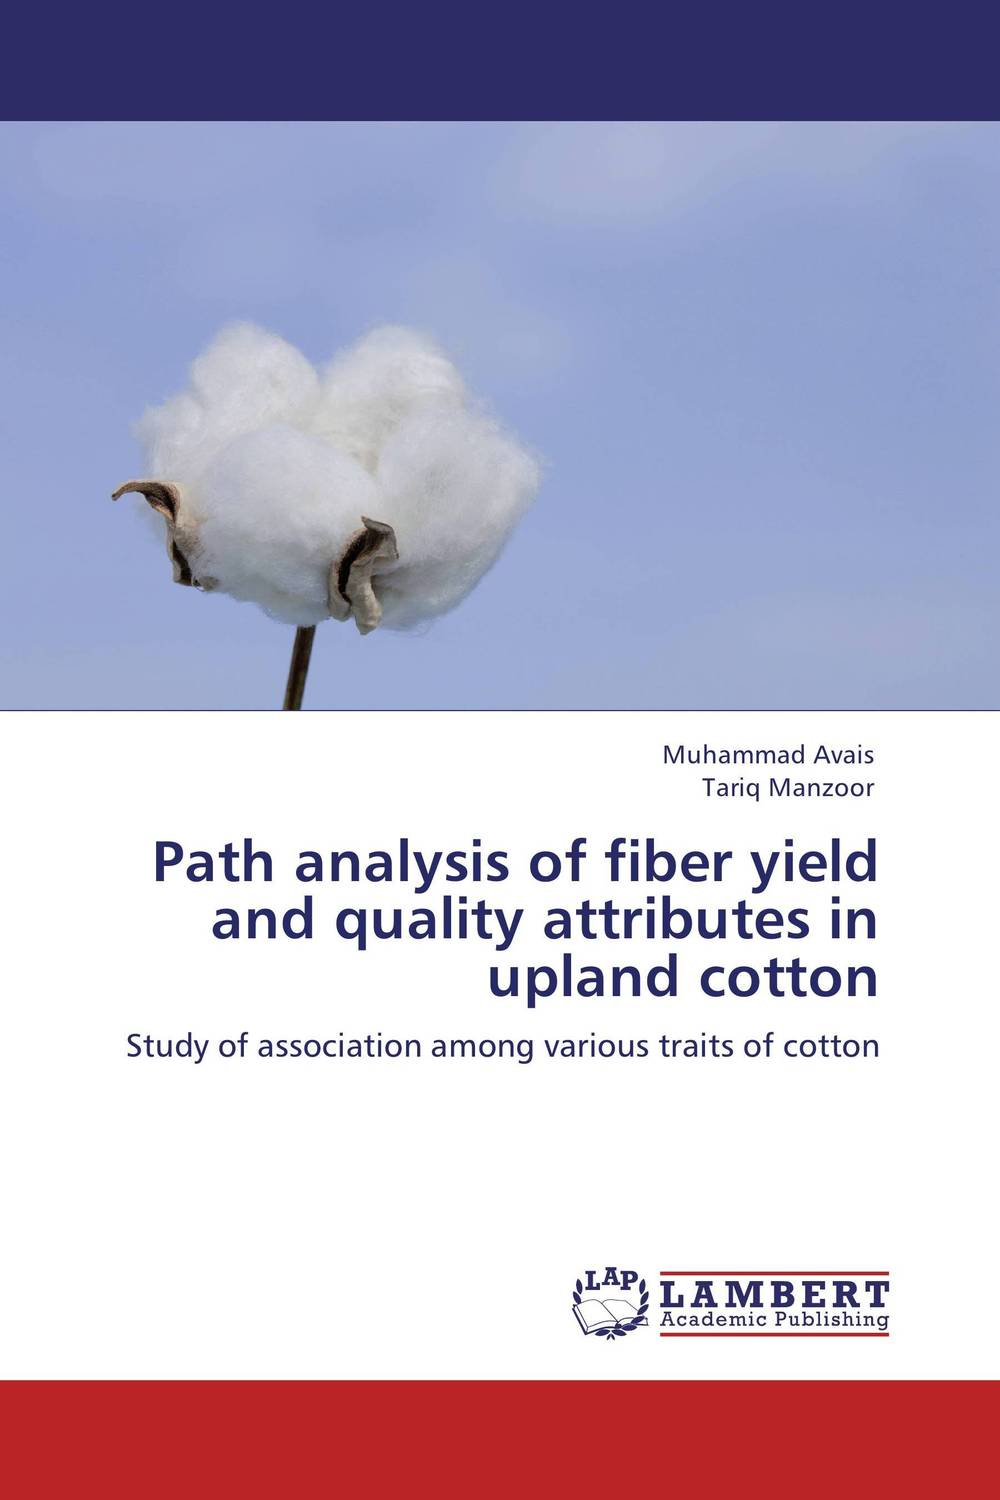 Path analysis of fiber yield and quality attributes in upland cotton